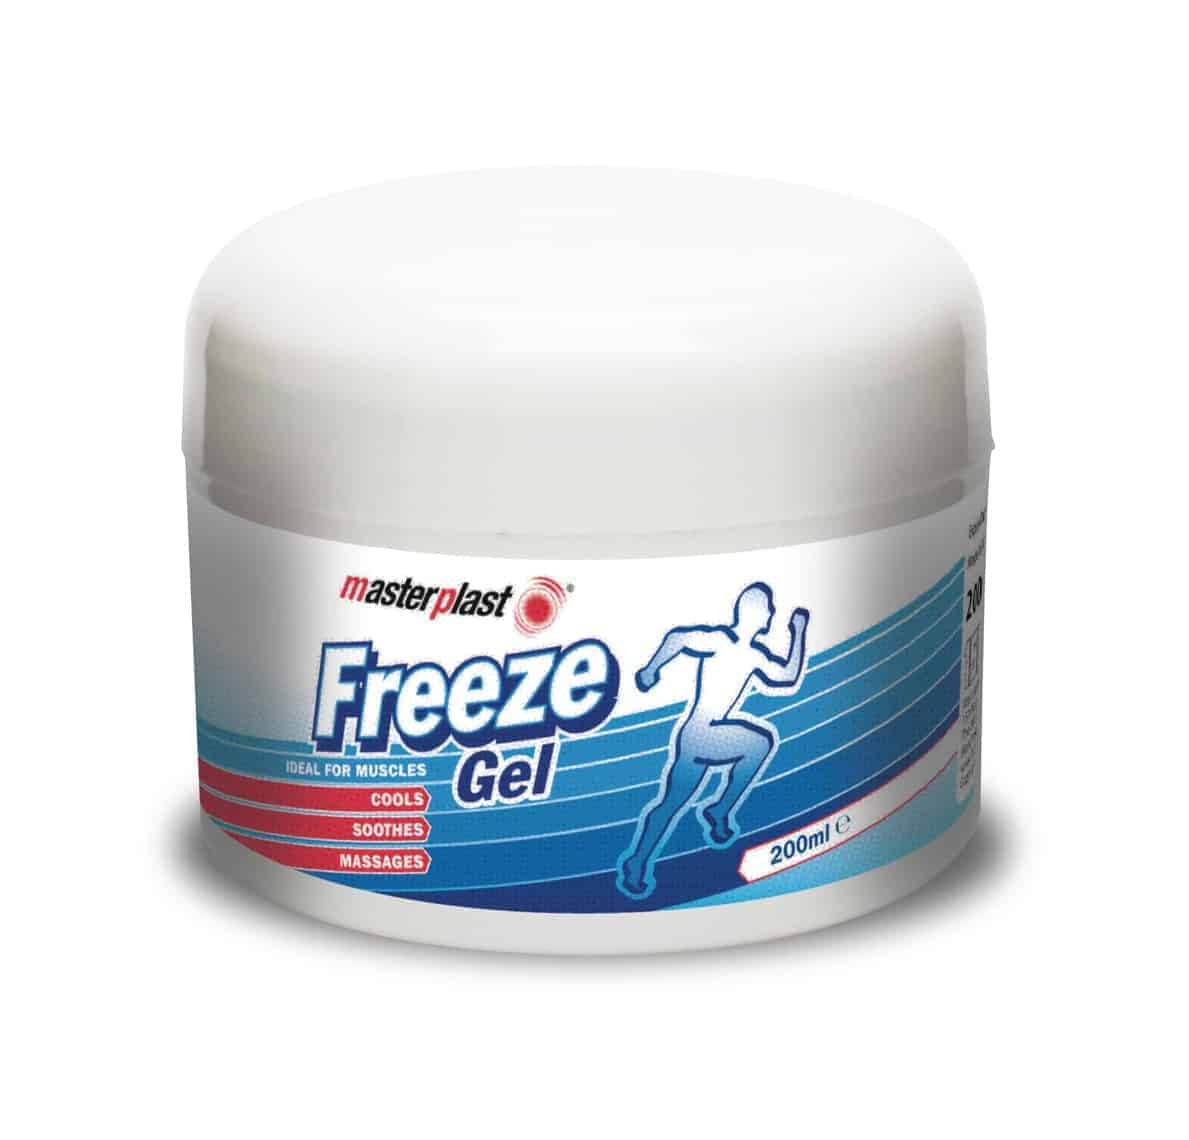 Master Plast Freeze Gel Tub 200 Ml